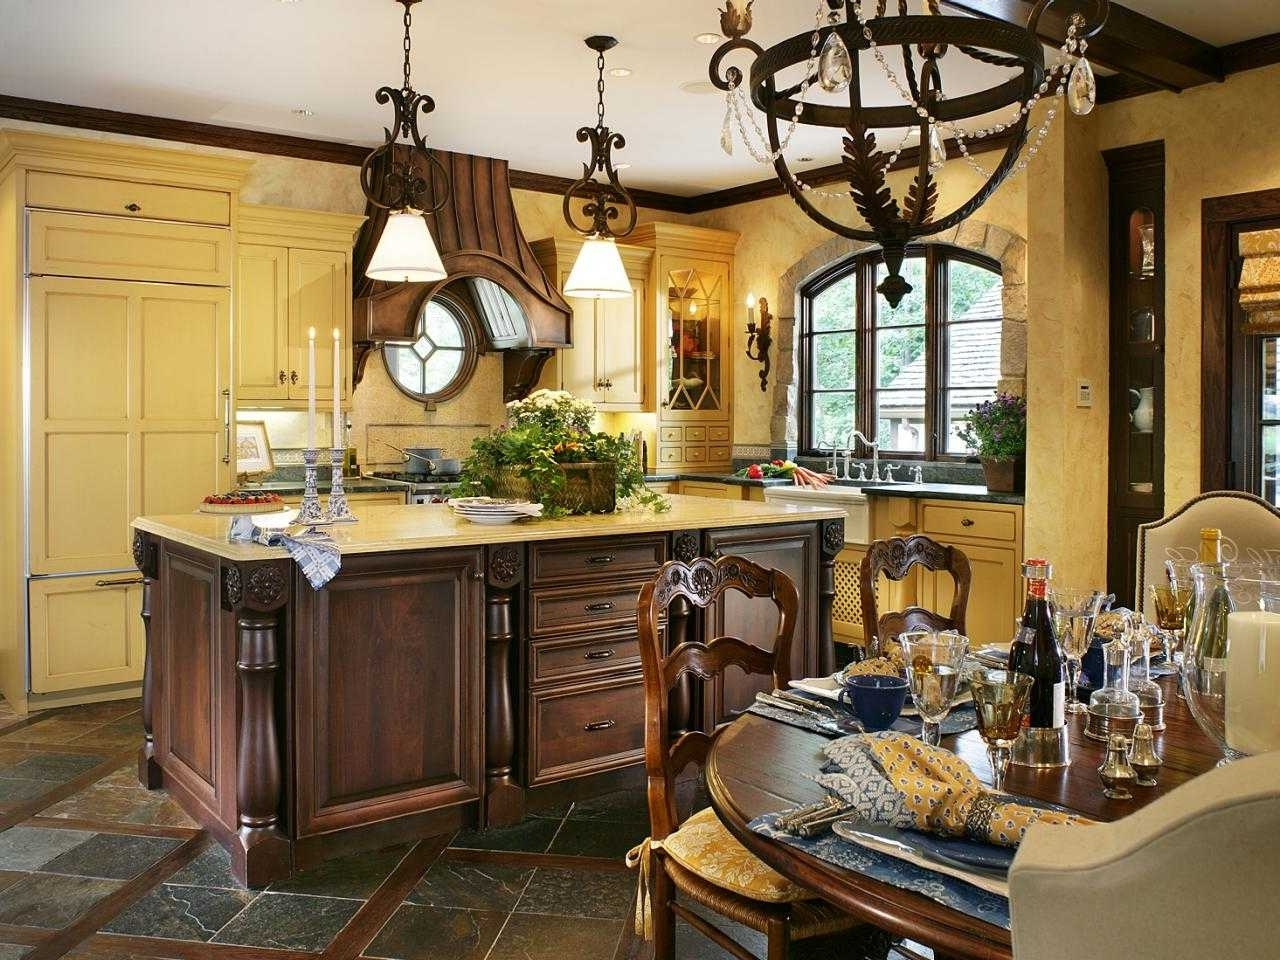 French Country Chandeliers For Kitchen Pertaining To Current French Country Lighting Fixtures Kitchen Pictures Design Amazing (View 7 of 20)